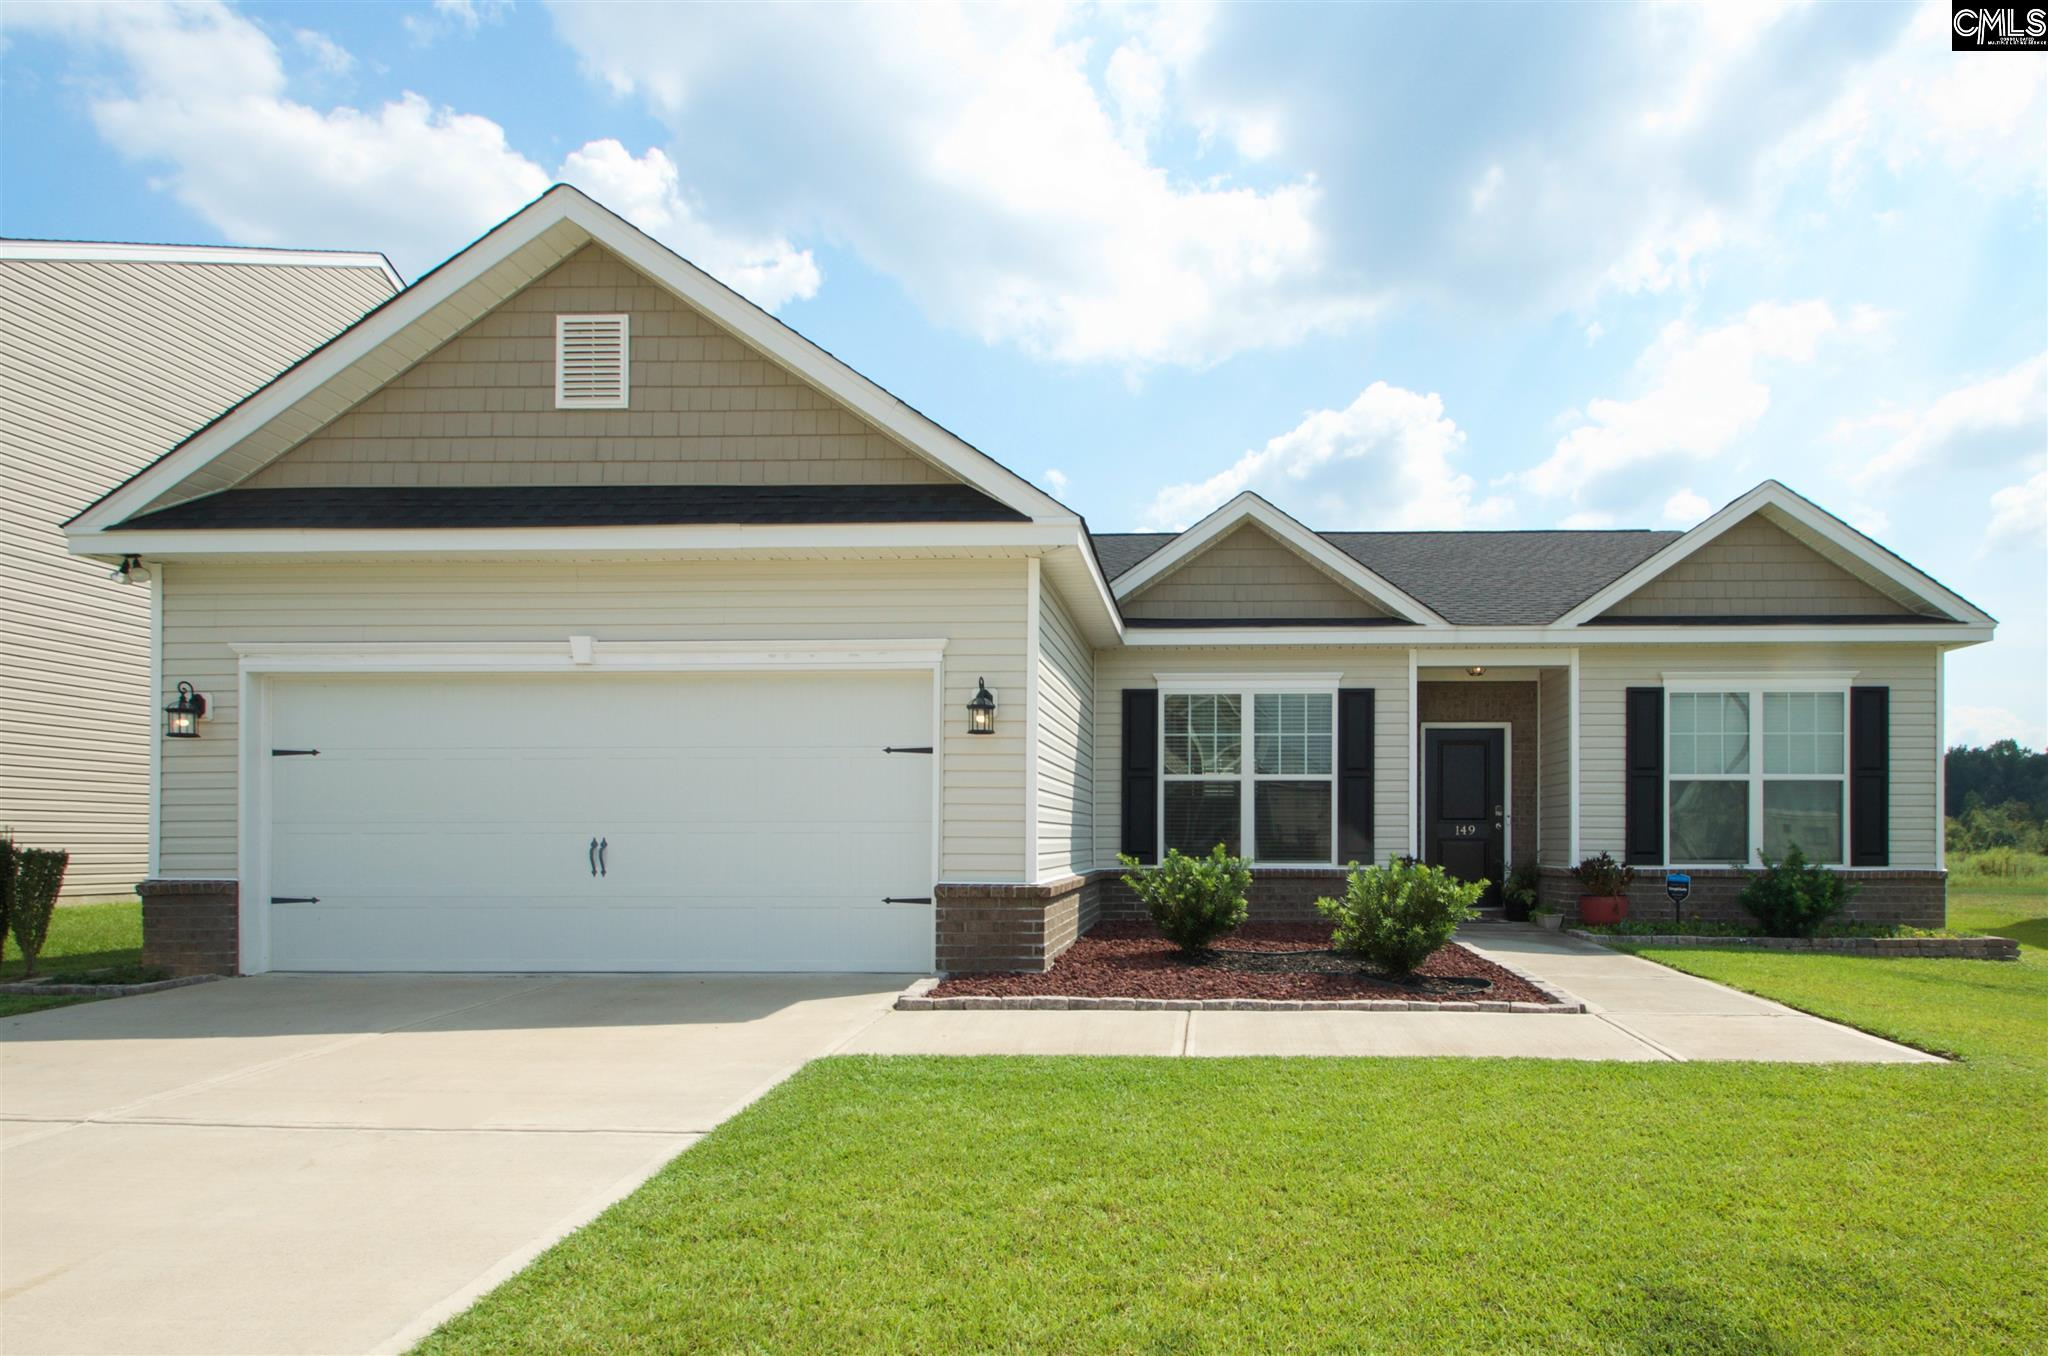 149 Hay Meadow Columbia, SC 29209